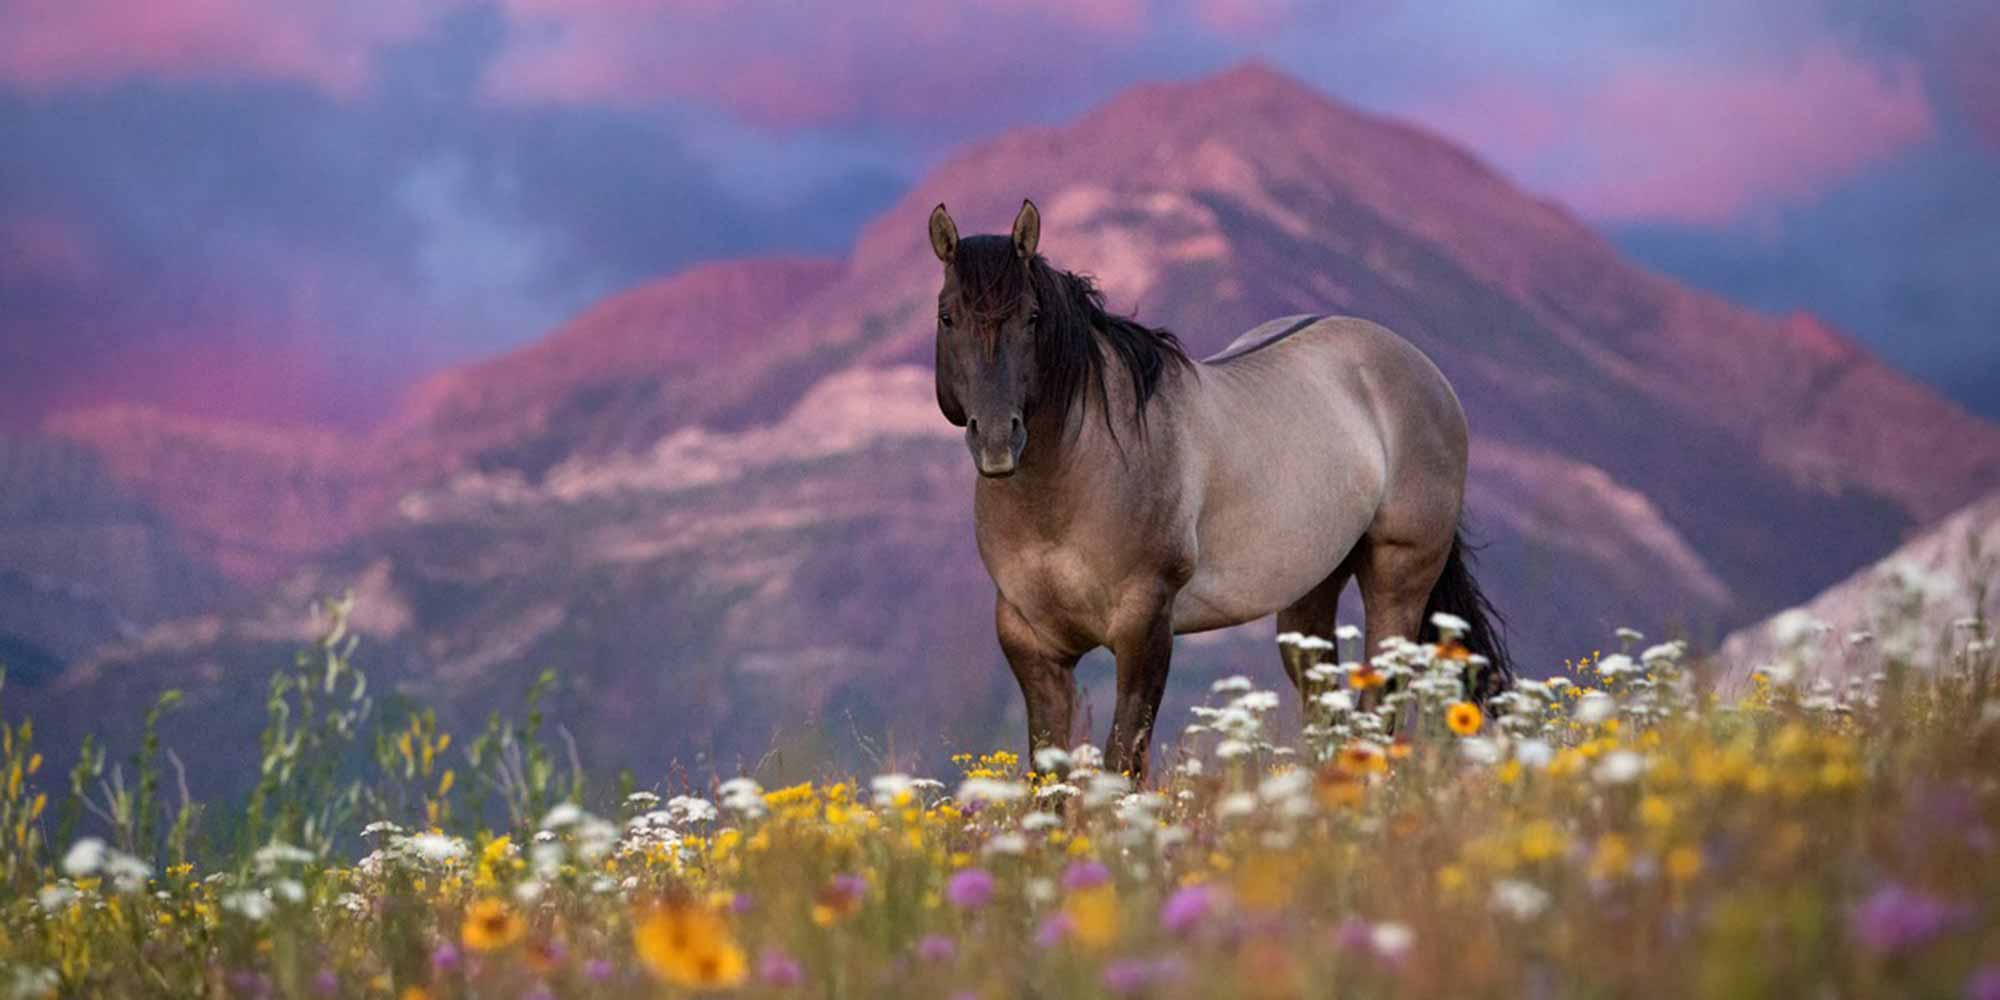 EQ Graphics | Beautiful Quarter Horse in a Field of Flowers Photography